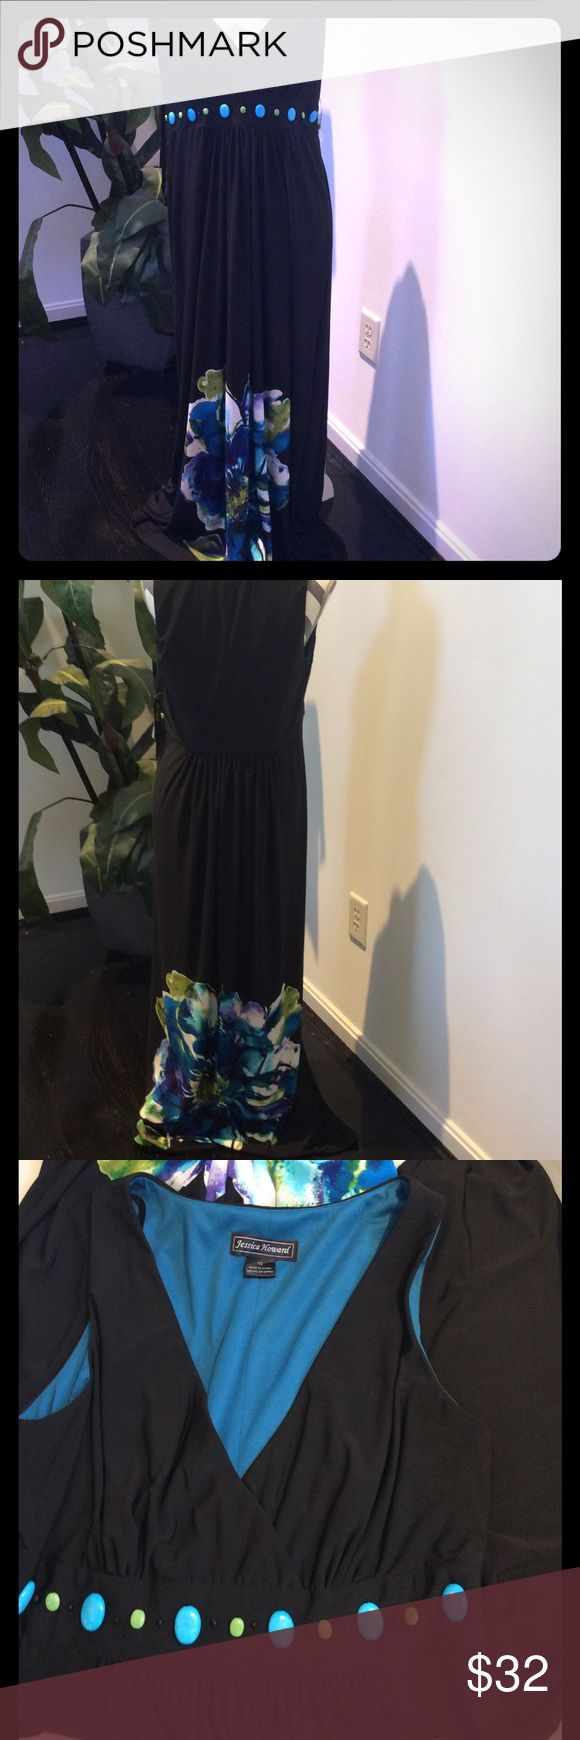 JESSICA HOWARD MAXI DRESS PRETTY BLACK BACKGROUND WITH BLUES AND GREENS ON A FLOWER PRINT ON THE BOTTOM AND BEADS ACROSS THE EMPIRE WAIST. NO SLEEVES AND ZIPS UP THE SIDE. V NECK IN FRONT. NEW W/TAGS. SIZE 12. Jessica Howard Dresses Maxi